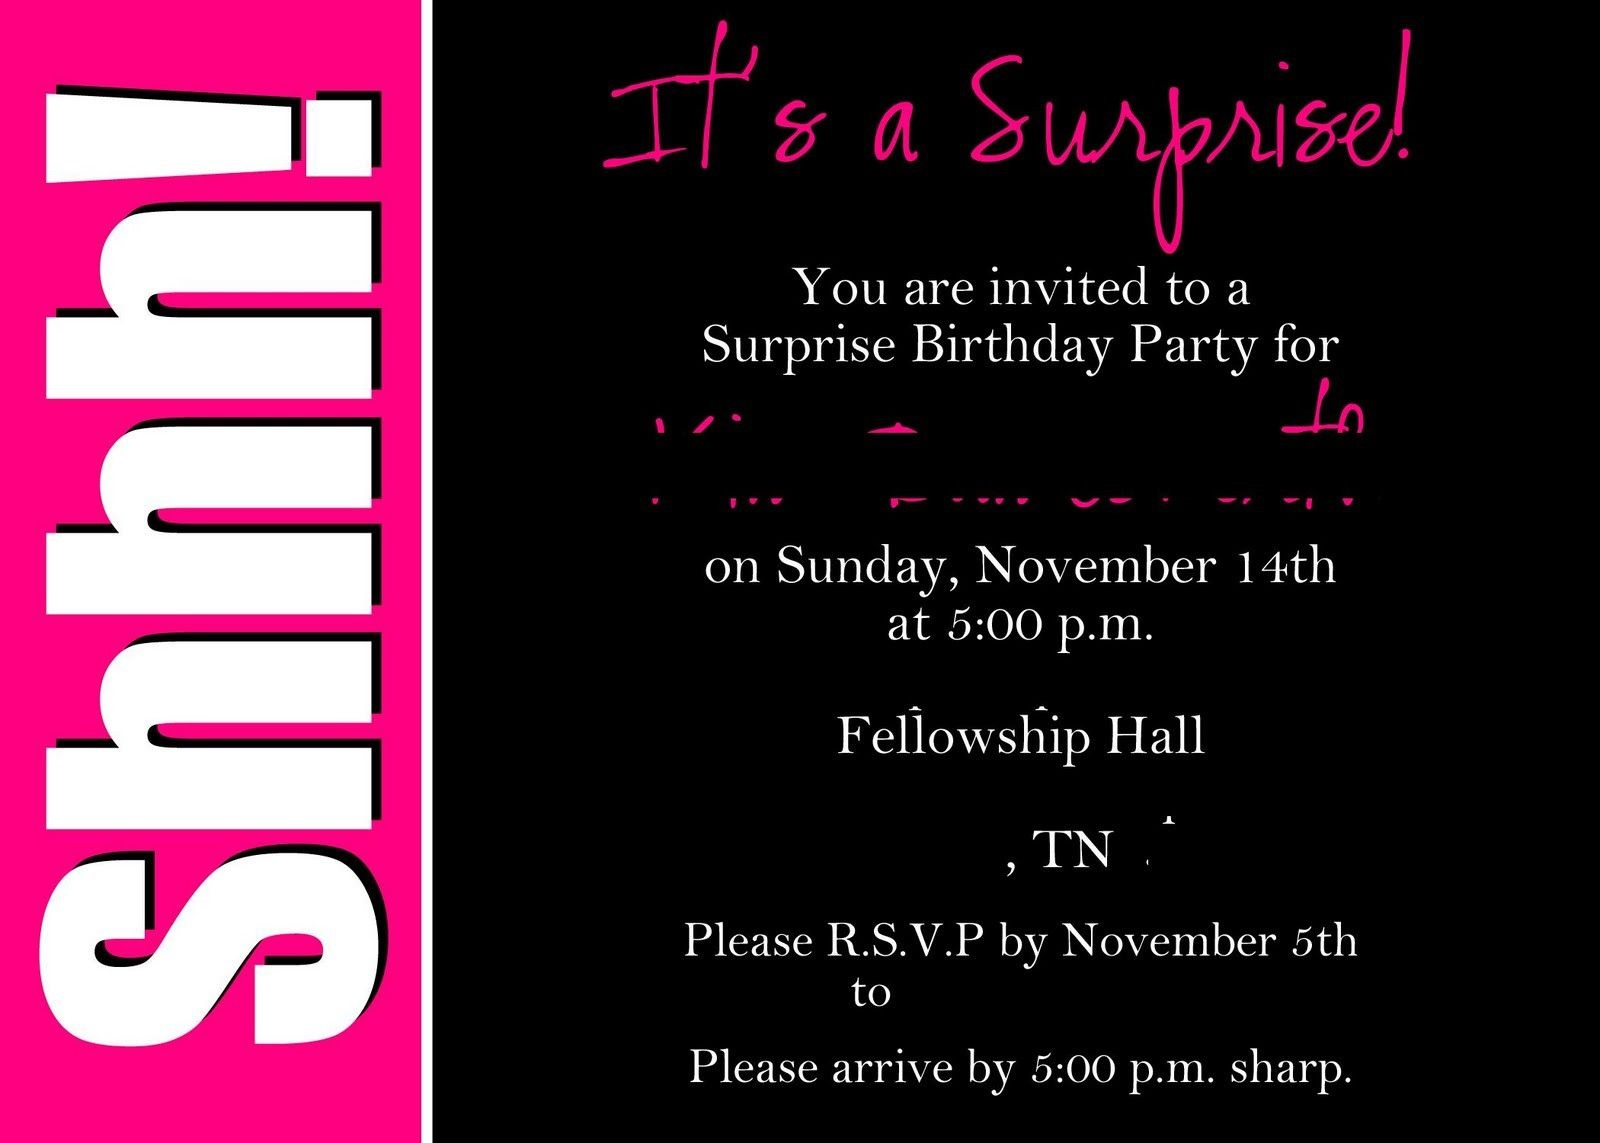 40Th Surprise Birthday Party Invitations | Free Printable Birthday - Free Printable Surprise Party Invitation Templates